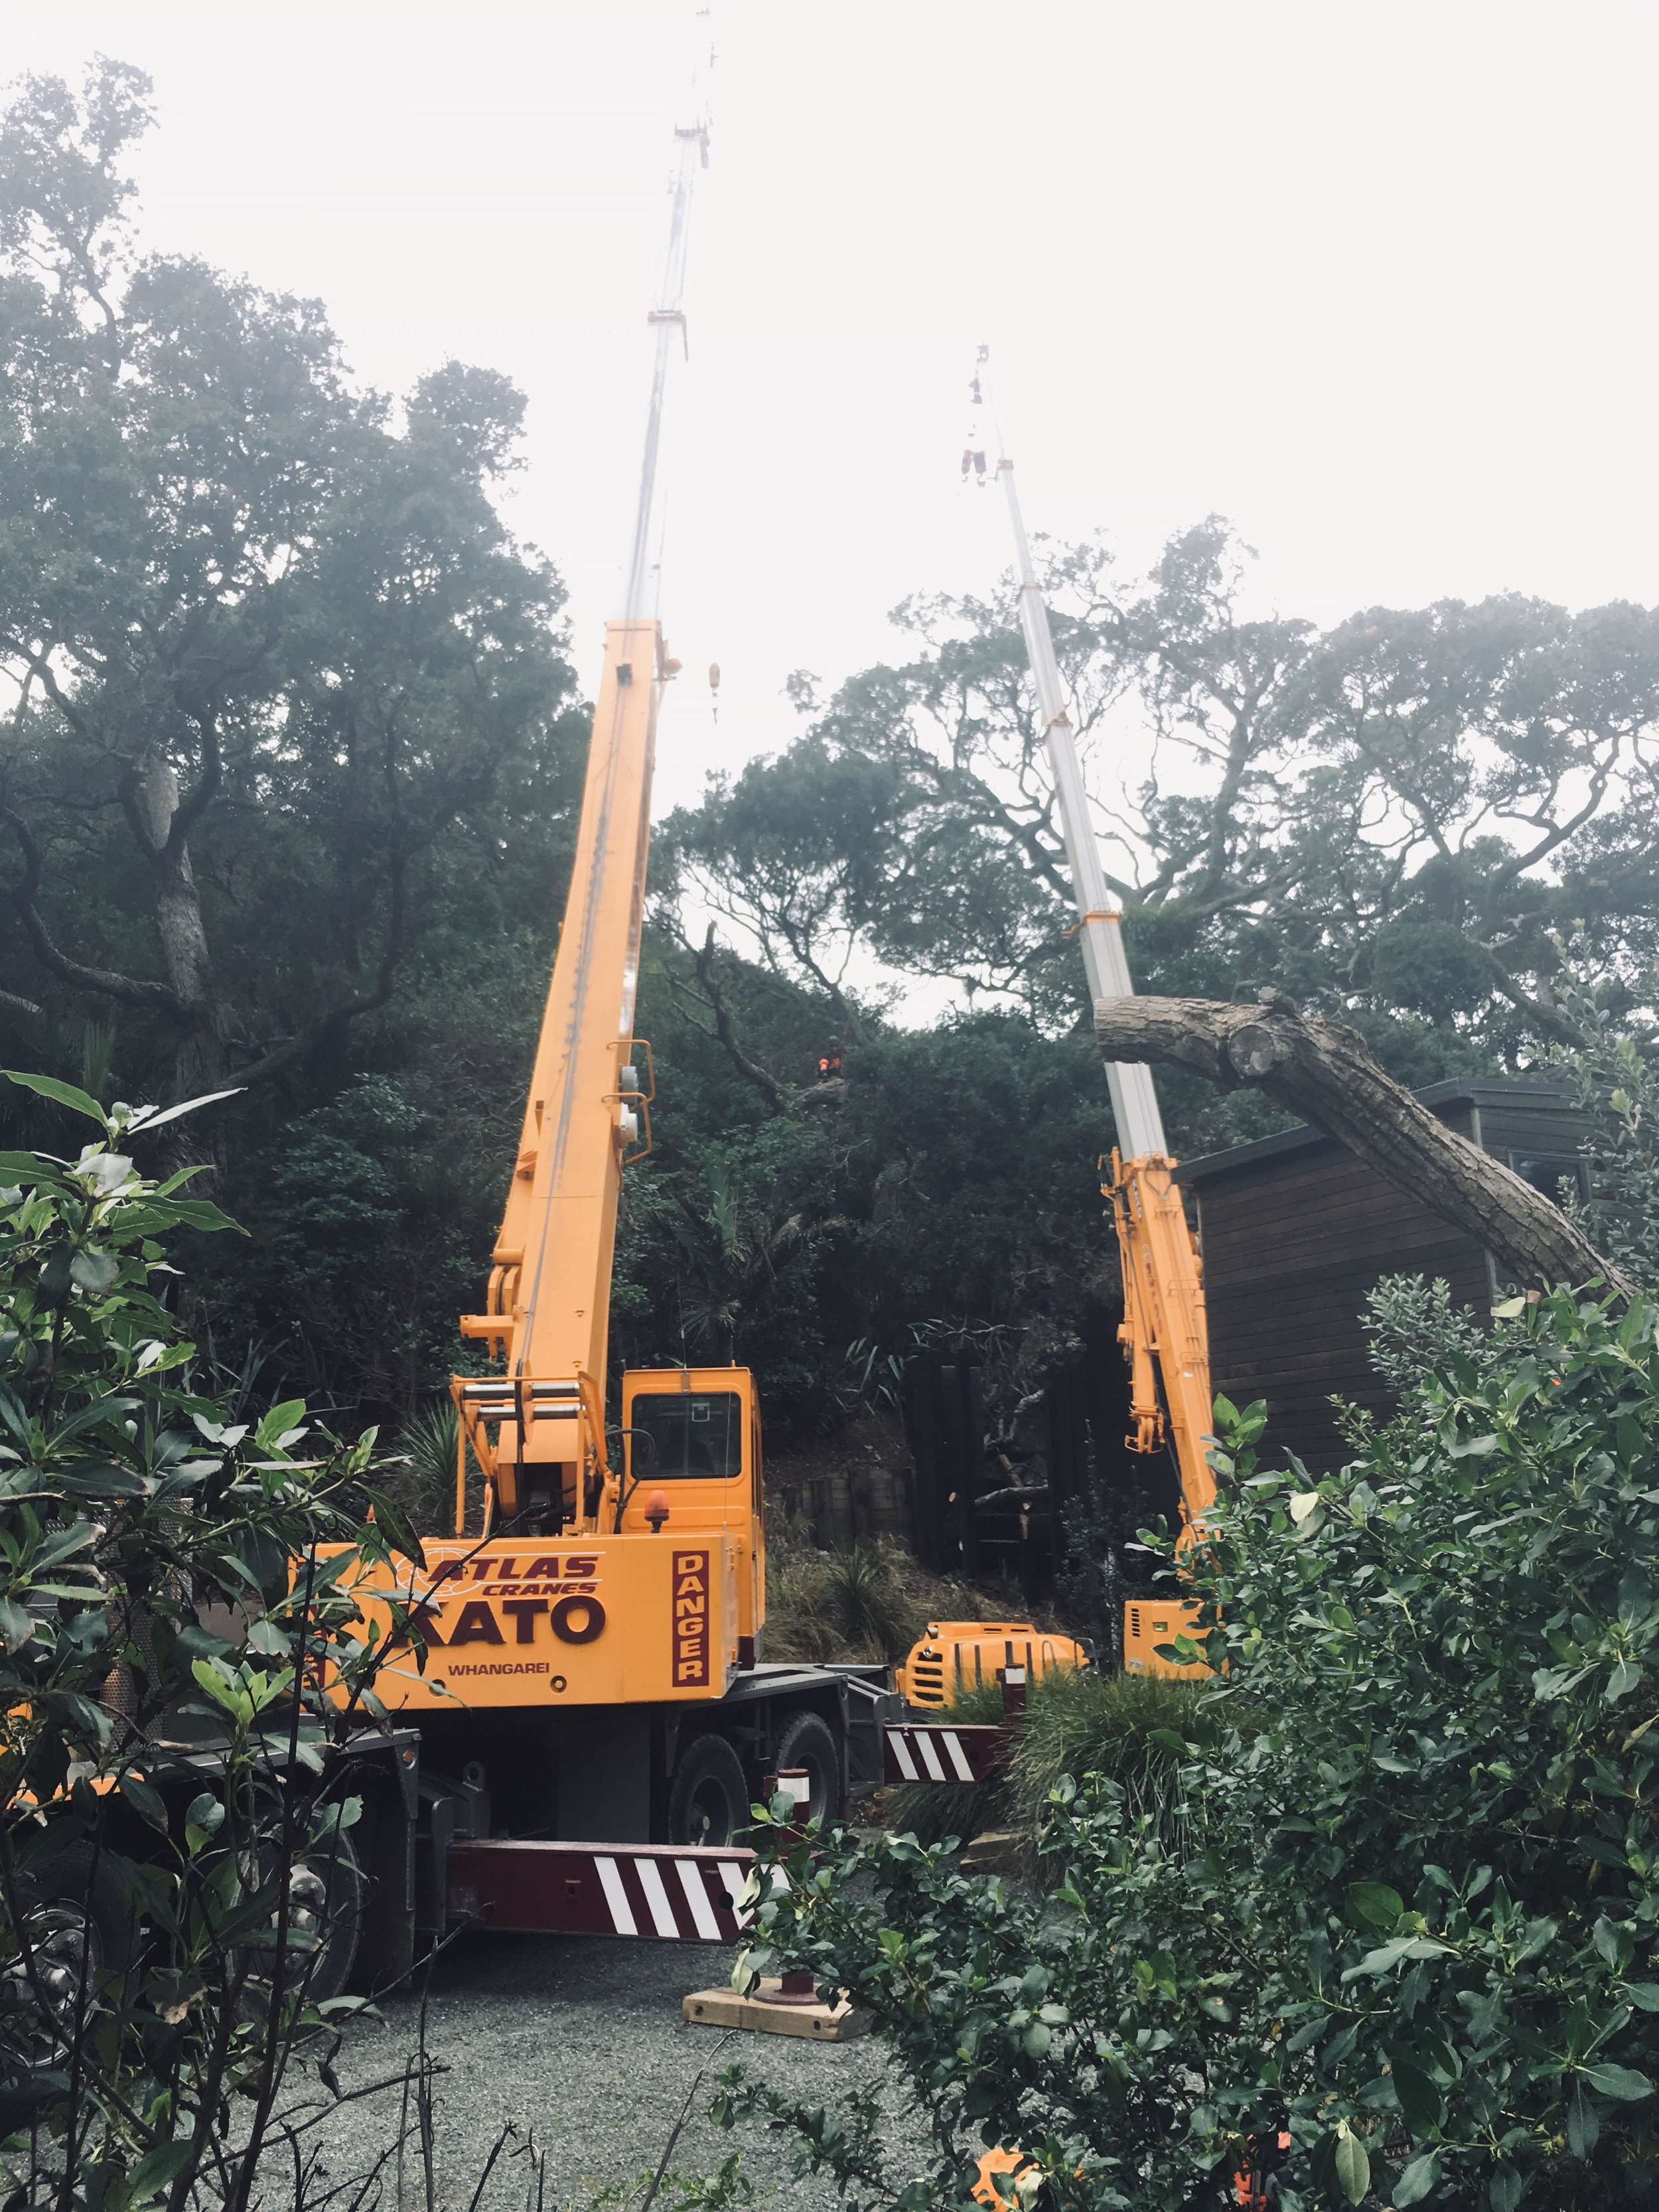 The crane on the right was the climbers anchor, the crane on the left lifted the sections of tree away